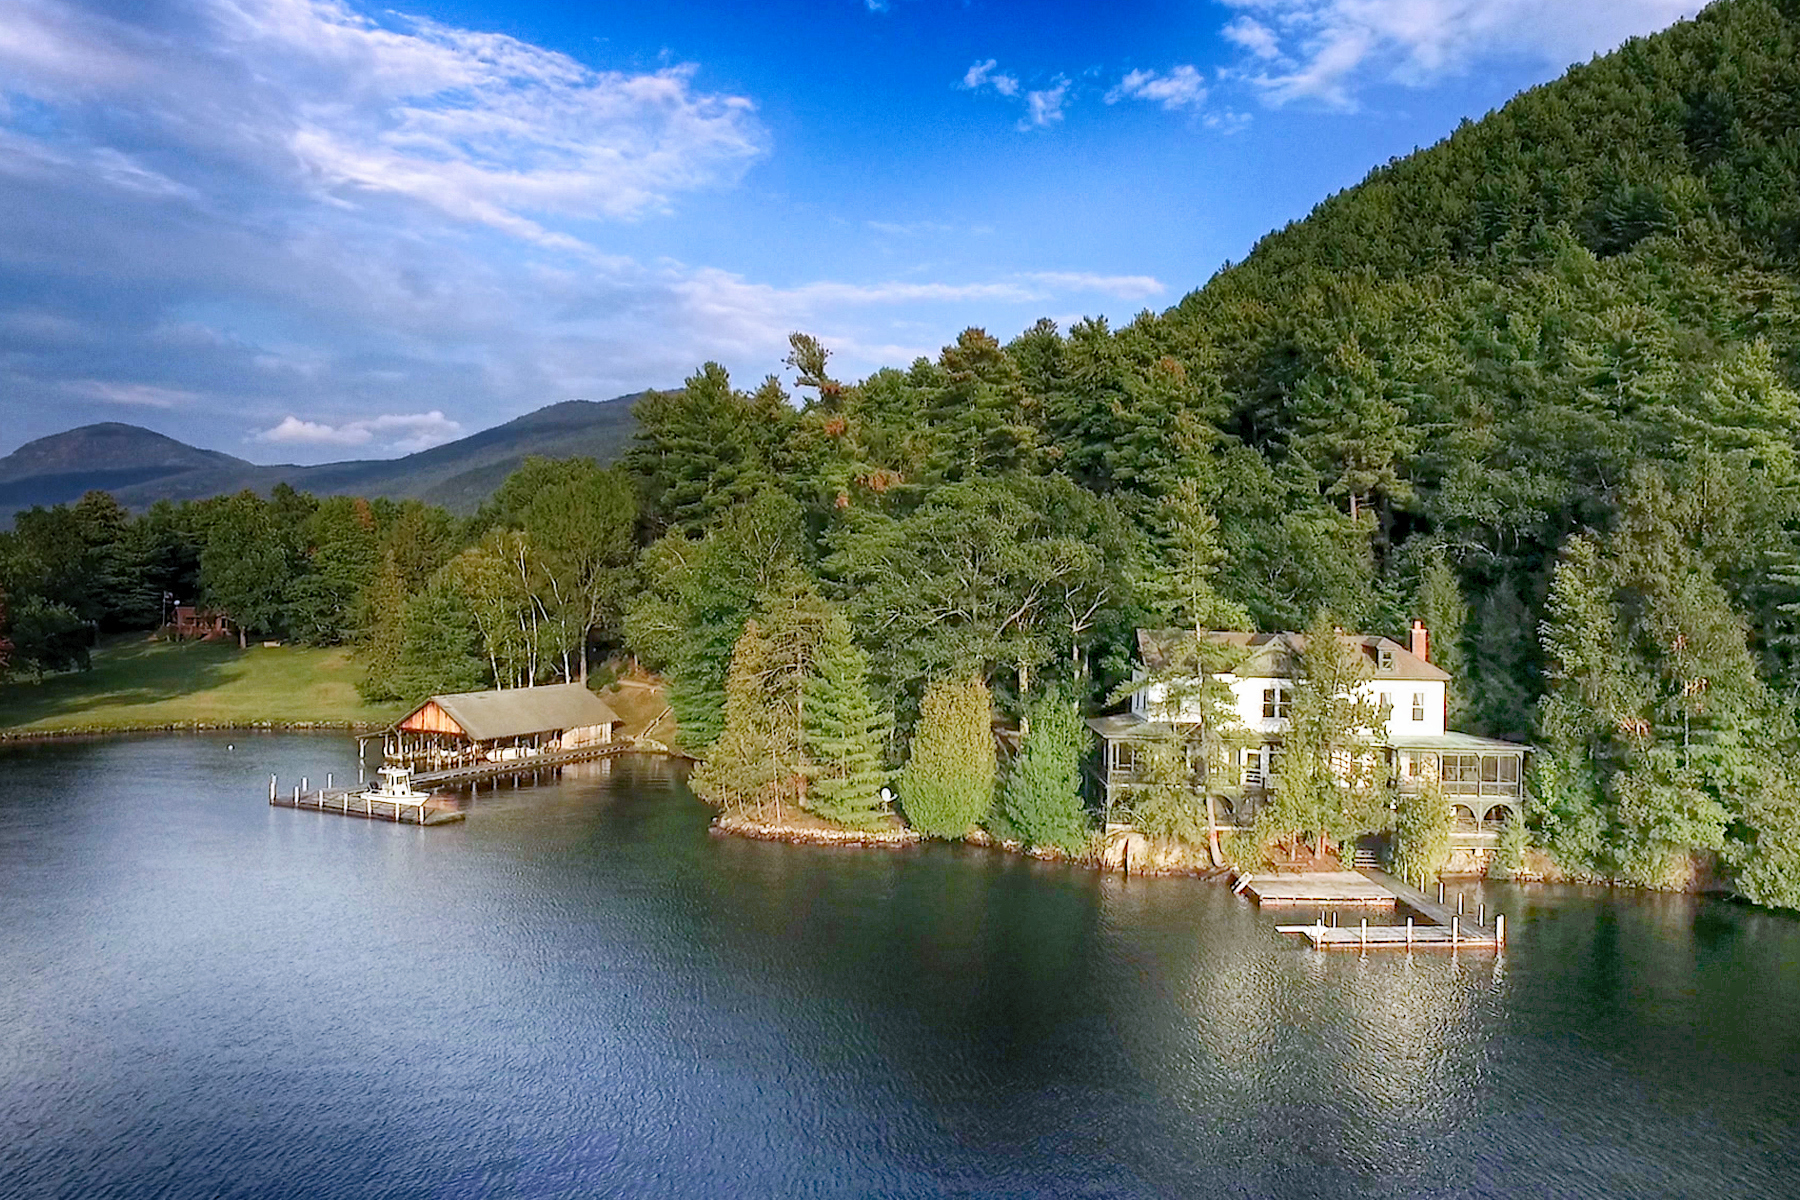 独户住宅 为 销售 在 Lakeside on Lake George 931 Shelving Rock Rd Fort Ann, 纽约州 12827 美国在/周边: Lake George